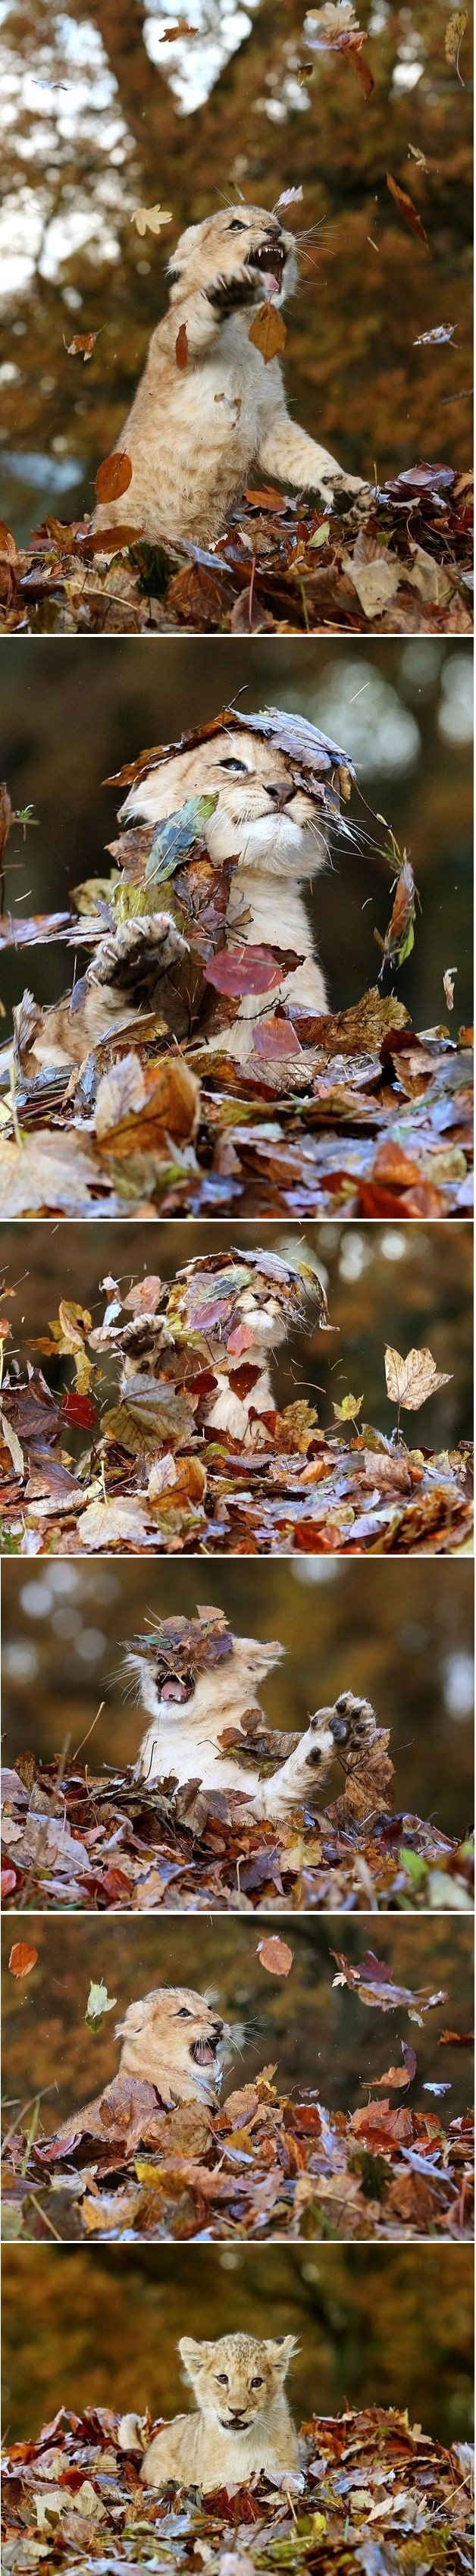 lion plays leaves